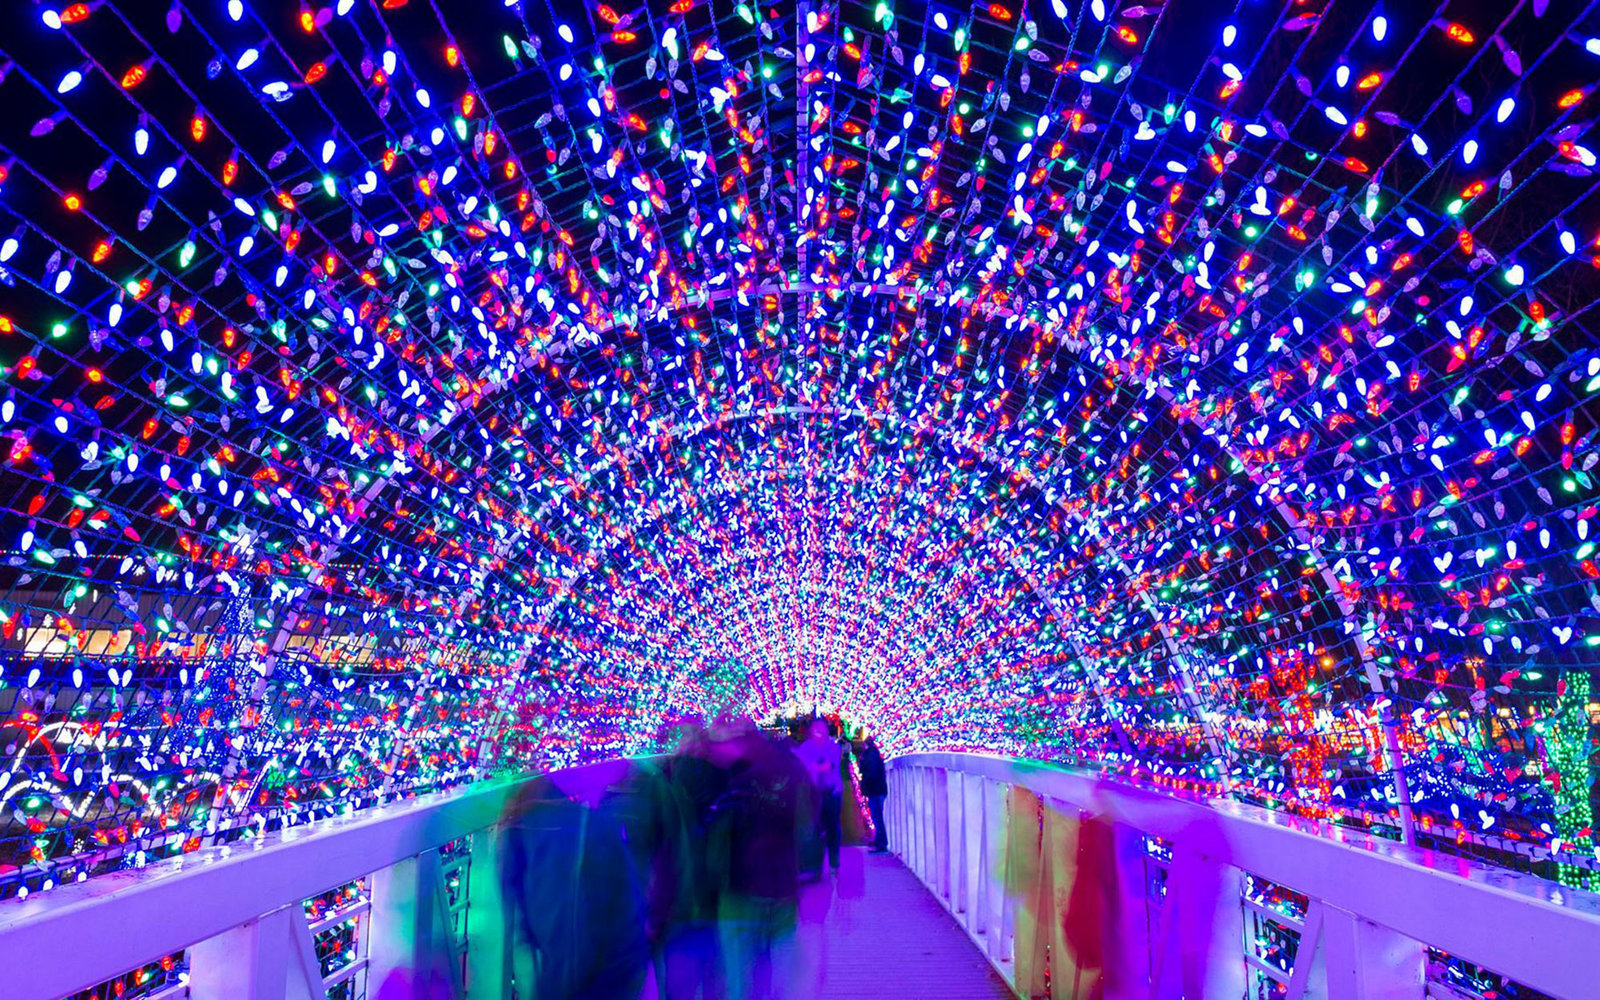 Lights Of Christmas.The Best Christmas Light Displays In Every State Travel